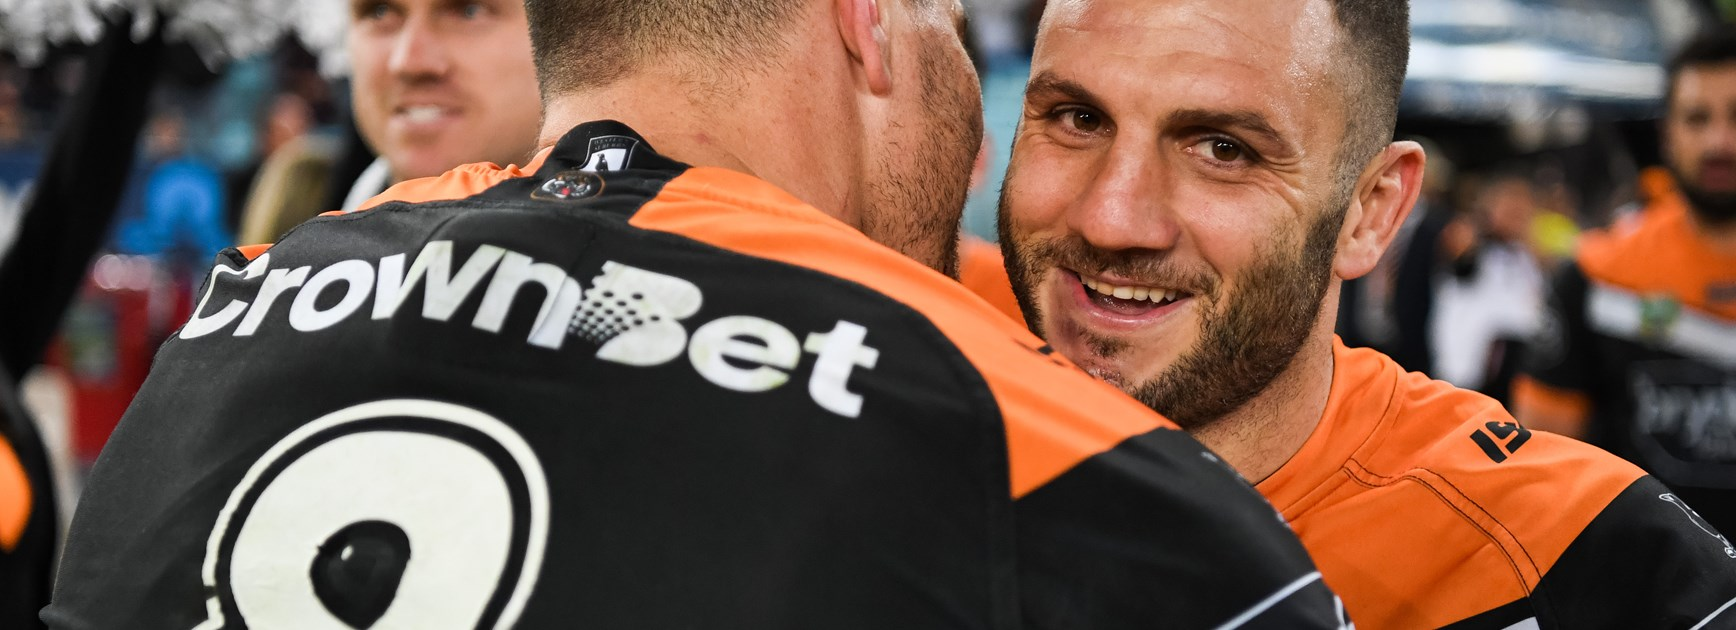 Wests Tigers Results: Round 19